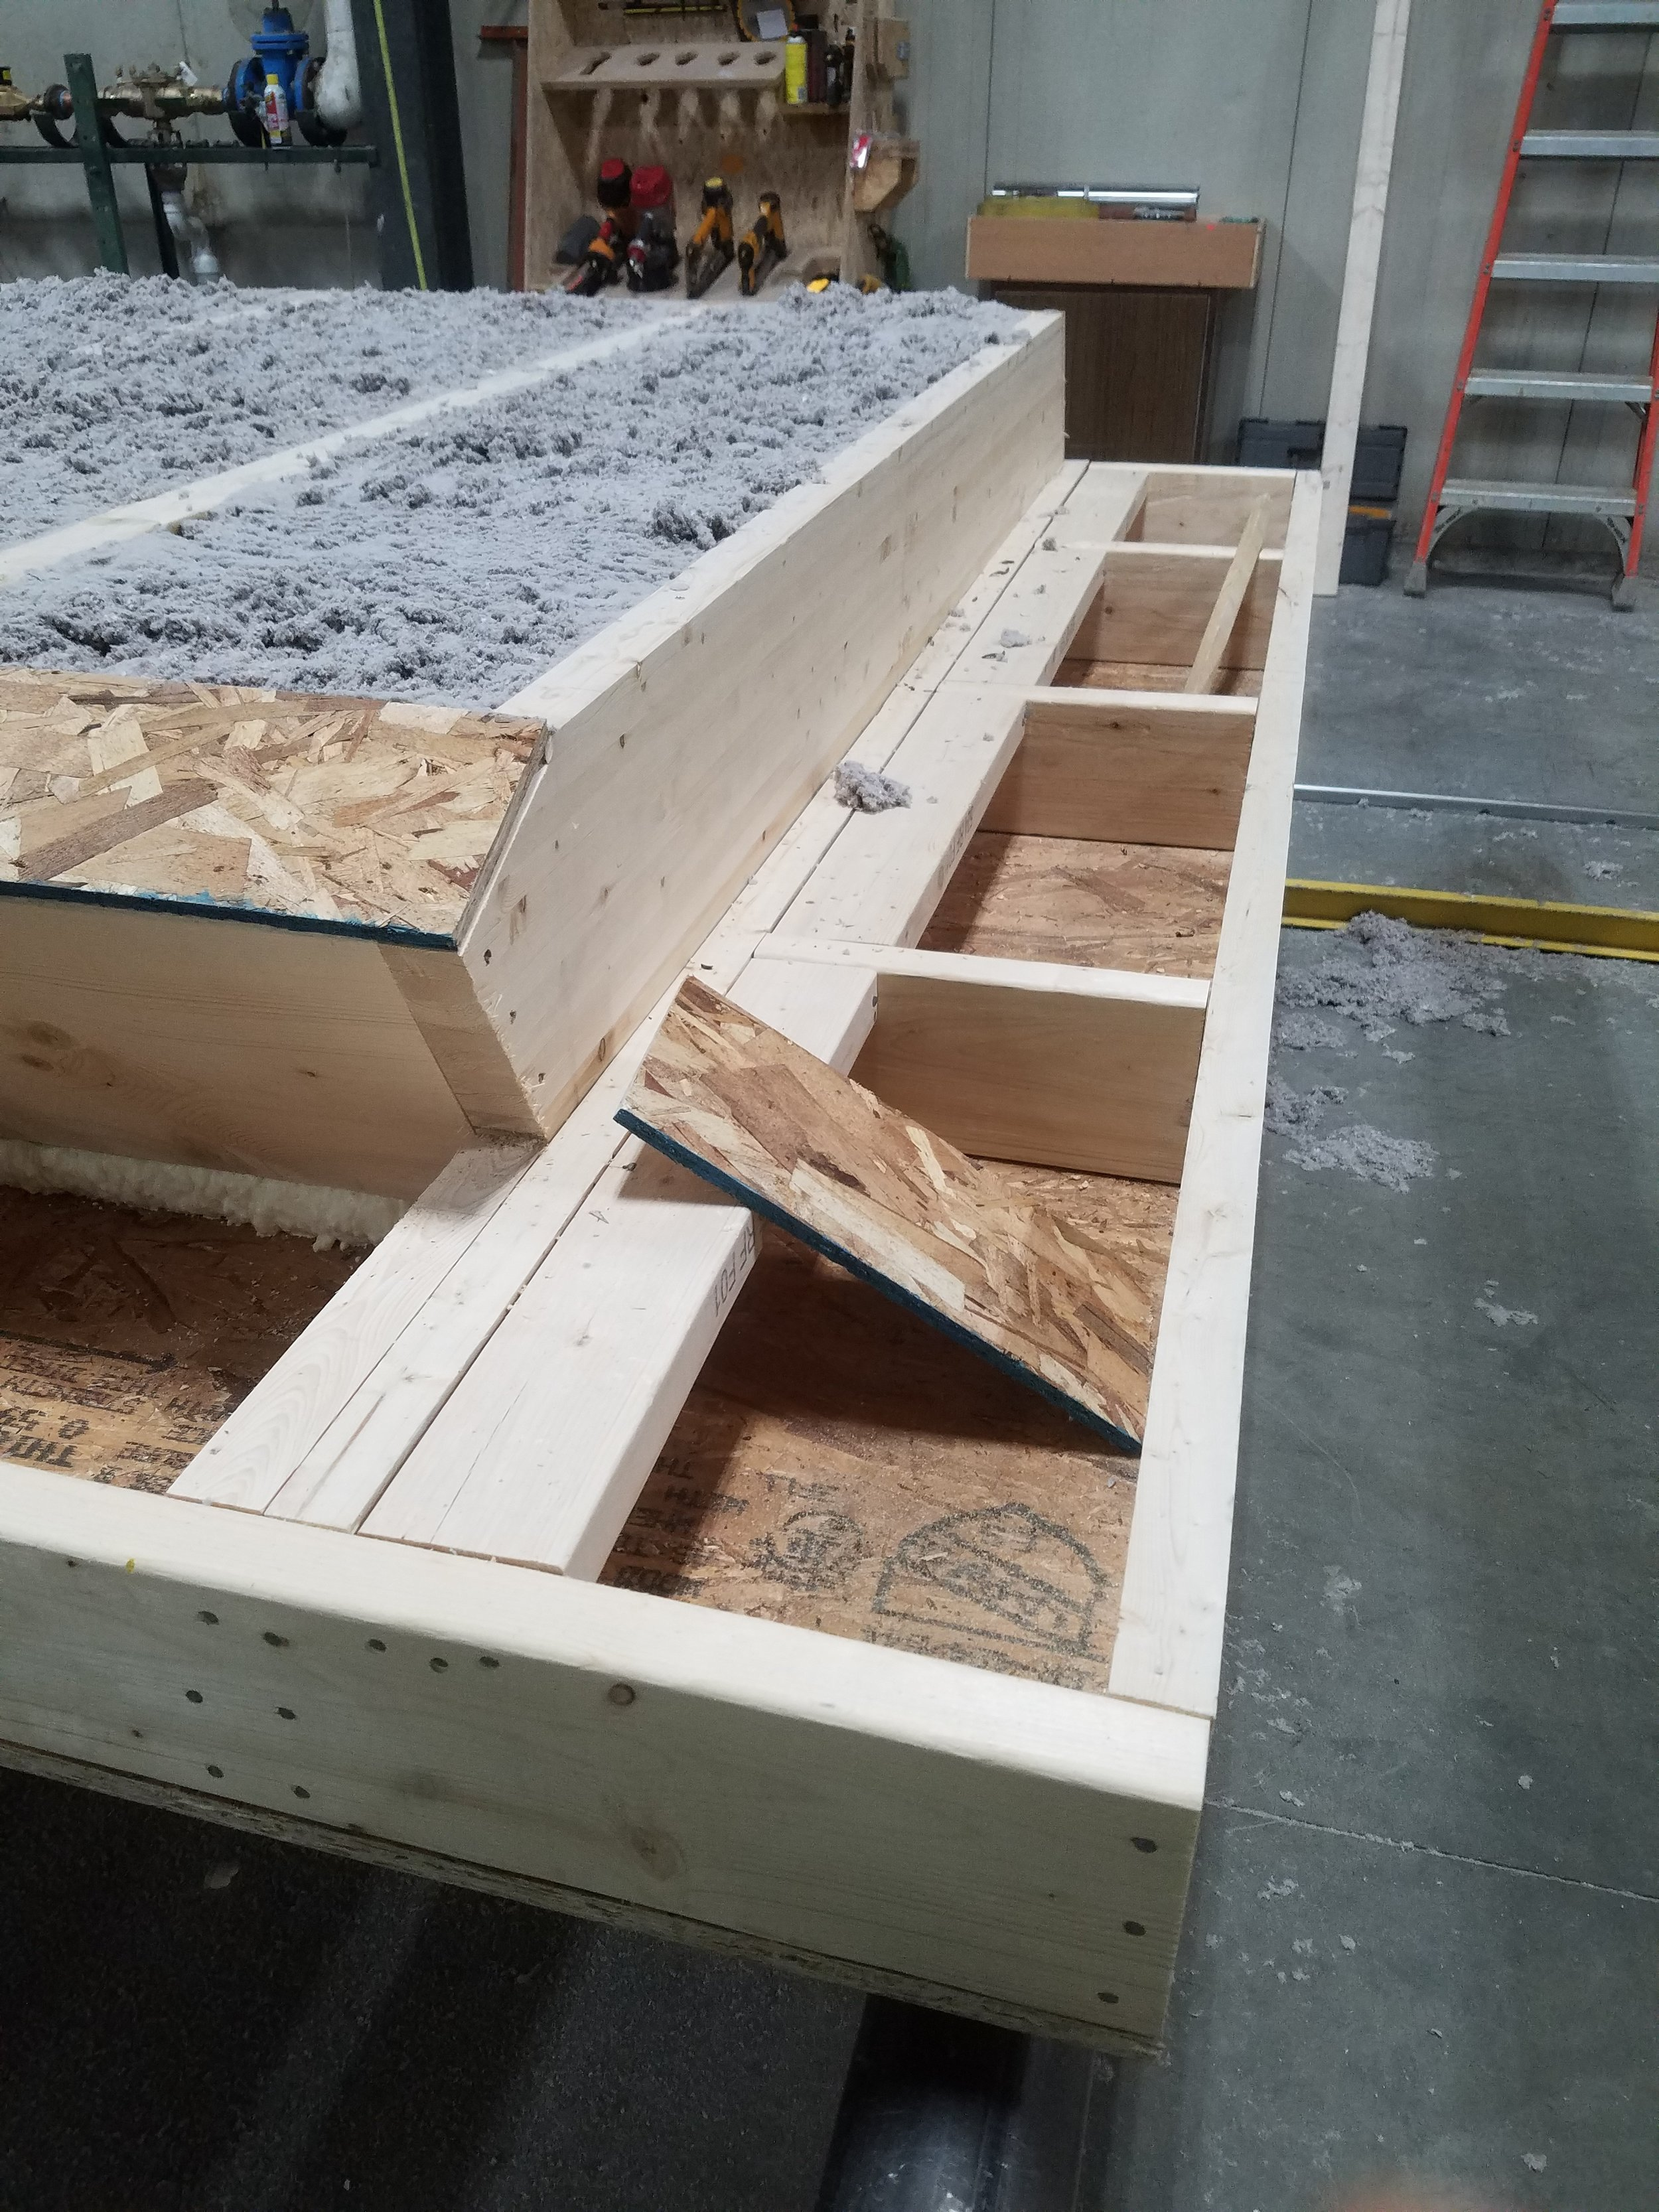 Roof panel with cellulose